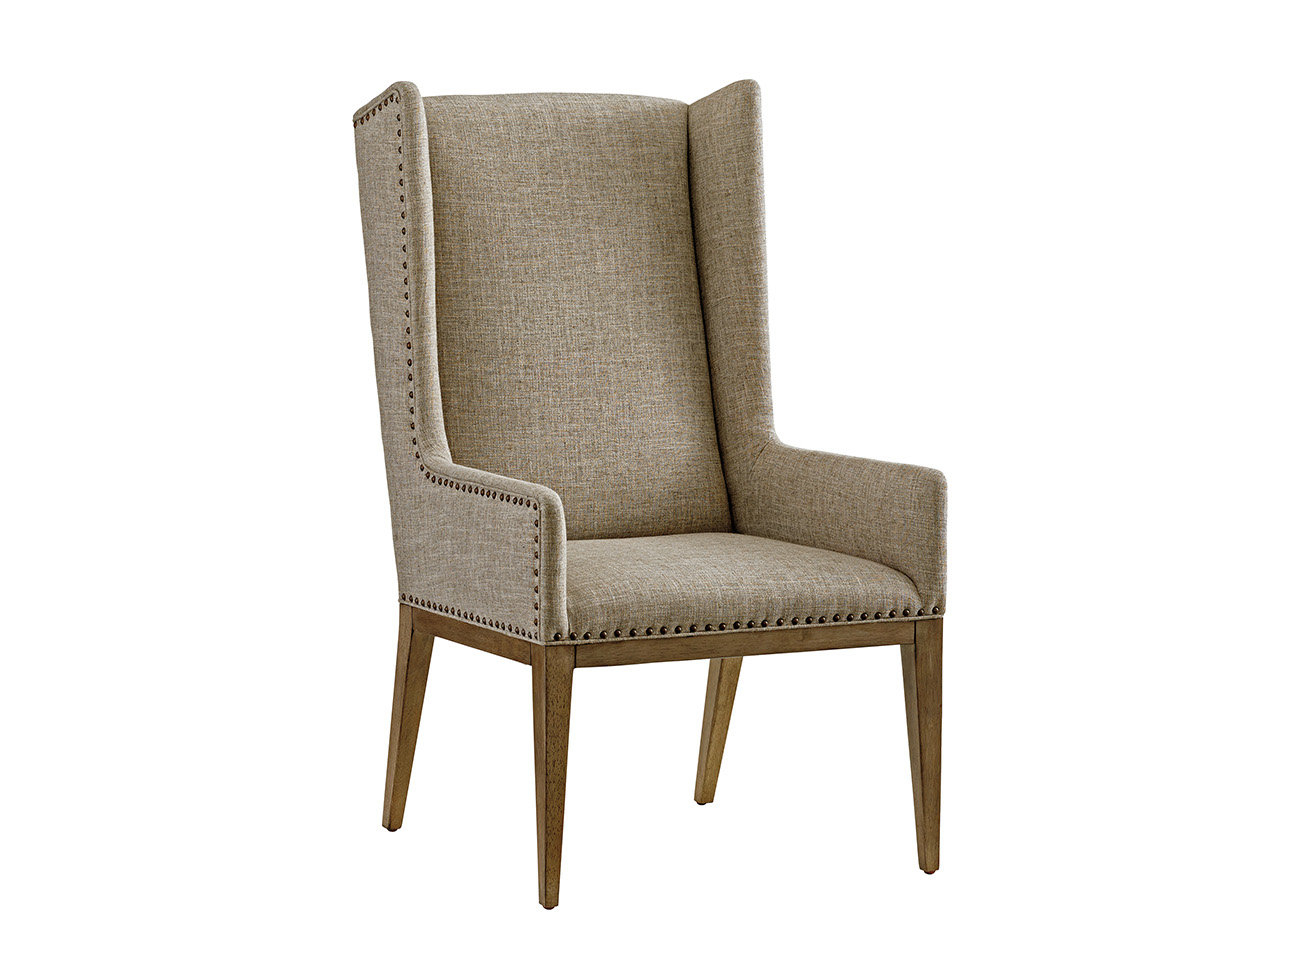 Tommy Bahama Home Cypress Point Wingback Chair | Wayfair Intended For Circuit Swivel Accent Chairs (View 21 of 25)